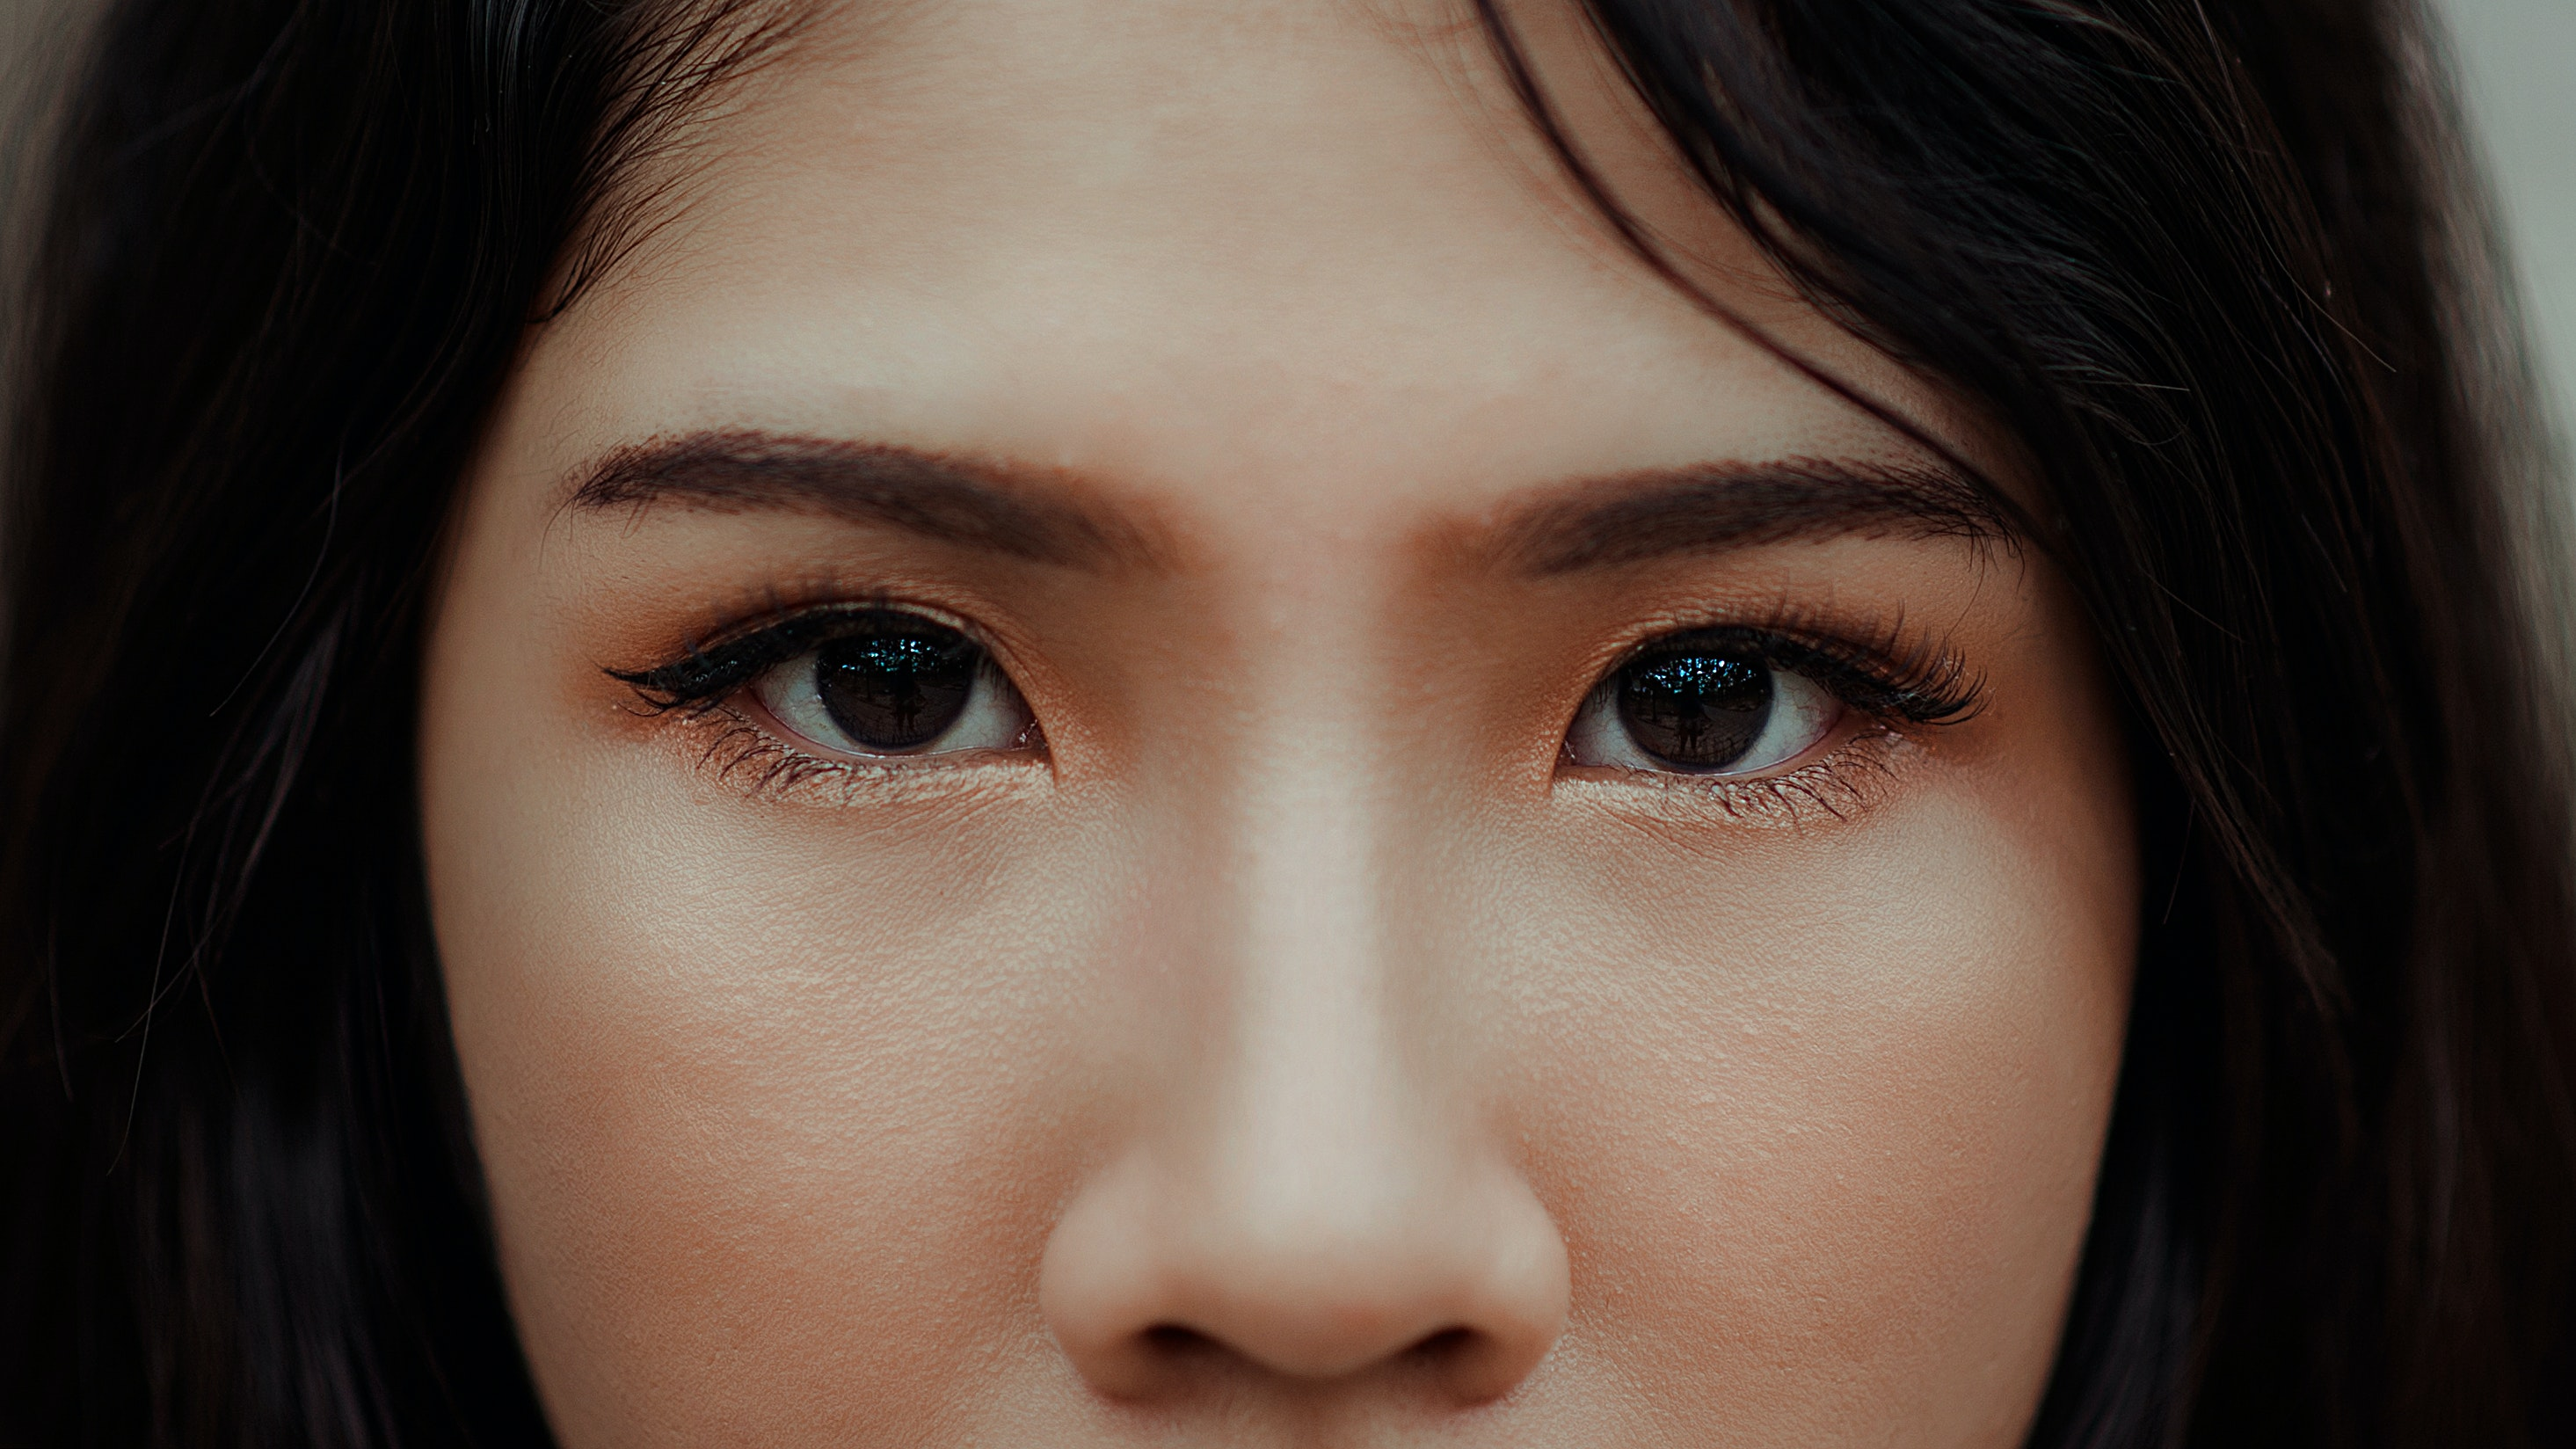 Close up photography of a woman · free stock photo